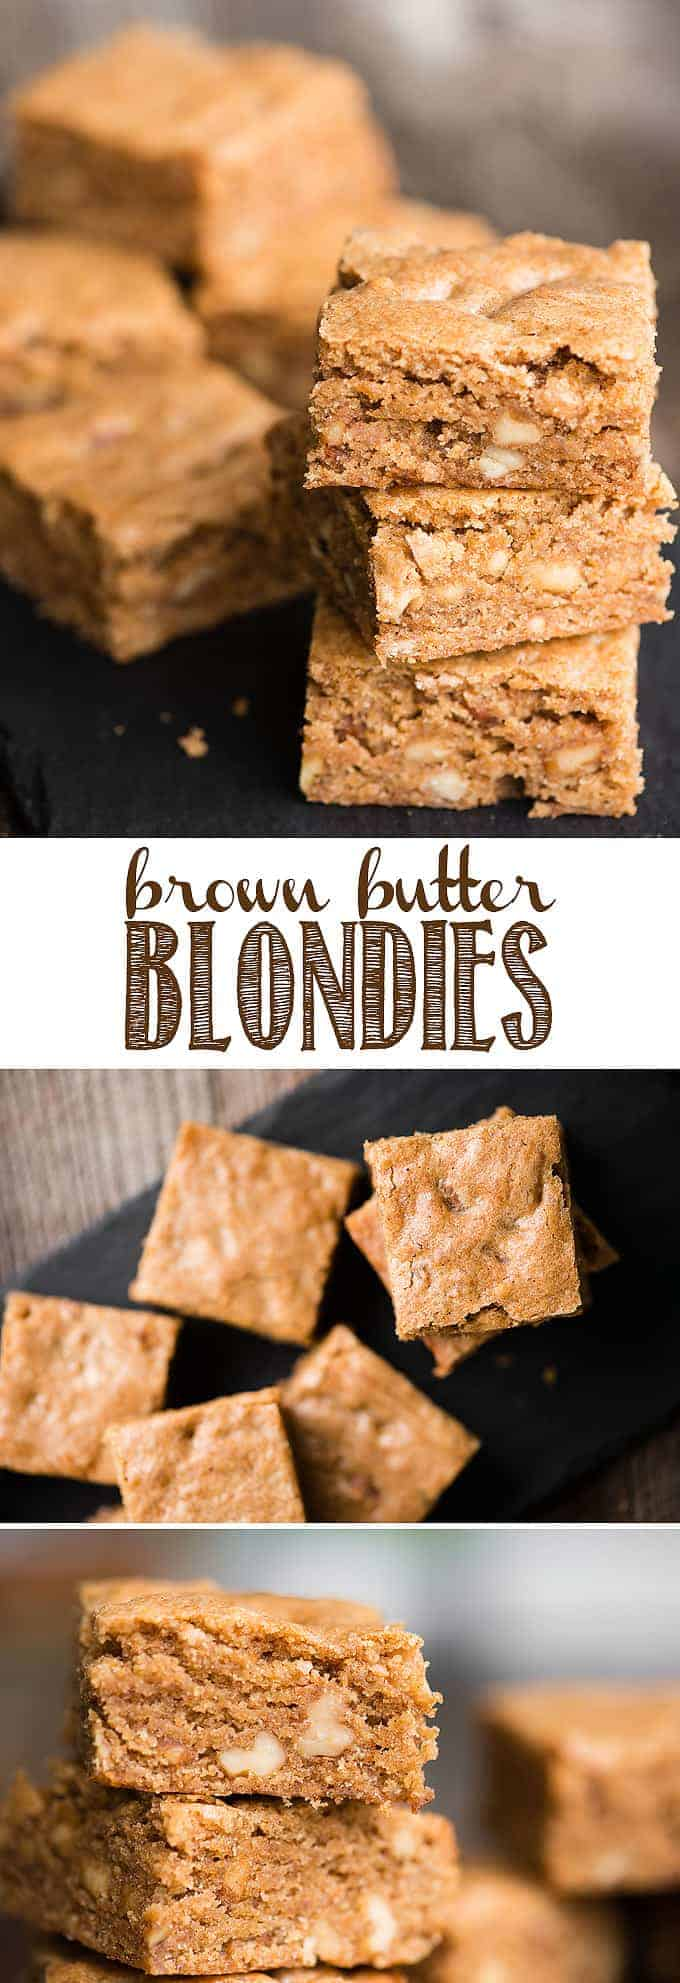 Brown Butter Blondies are a sweet and chewy dessert bar. Think of them as vanilla brownies. This blondie recipe cooks a vanilla bean and walnut pieces in butter until the browned butter becomes nutty and delicious. Brown sugar makes them chewy and perfectly sweet. These brown butter brownies will satisfy any craving! #blondies #blondierecipe #vanillabrownie